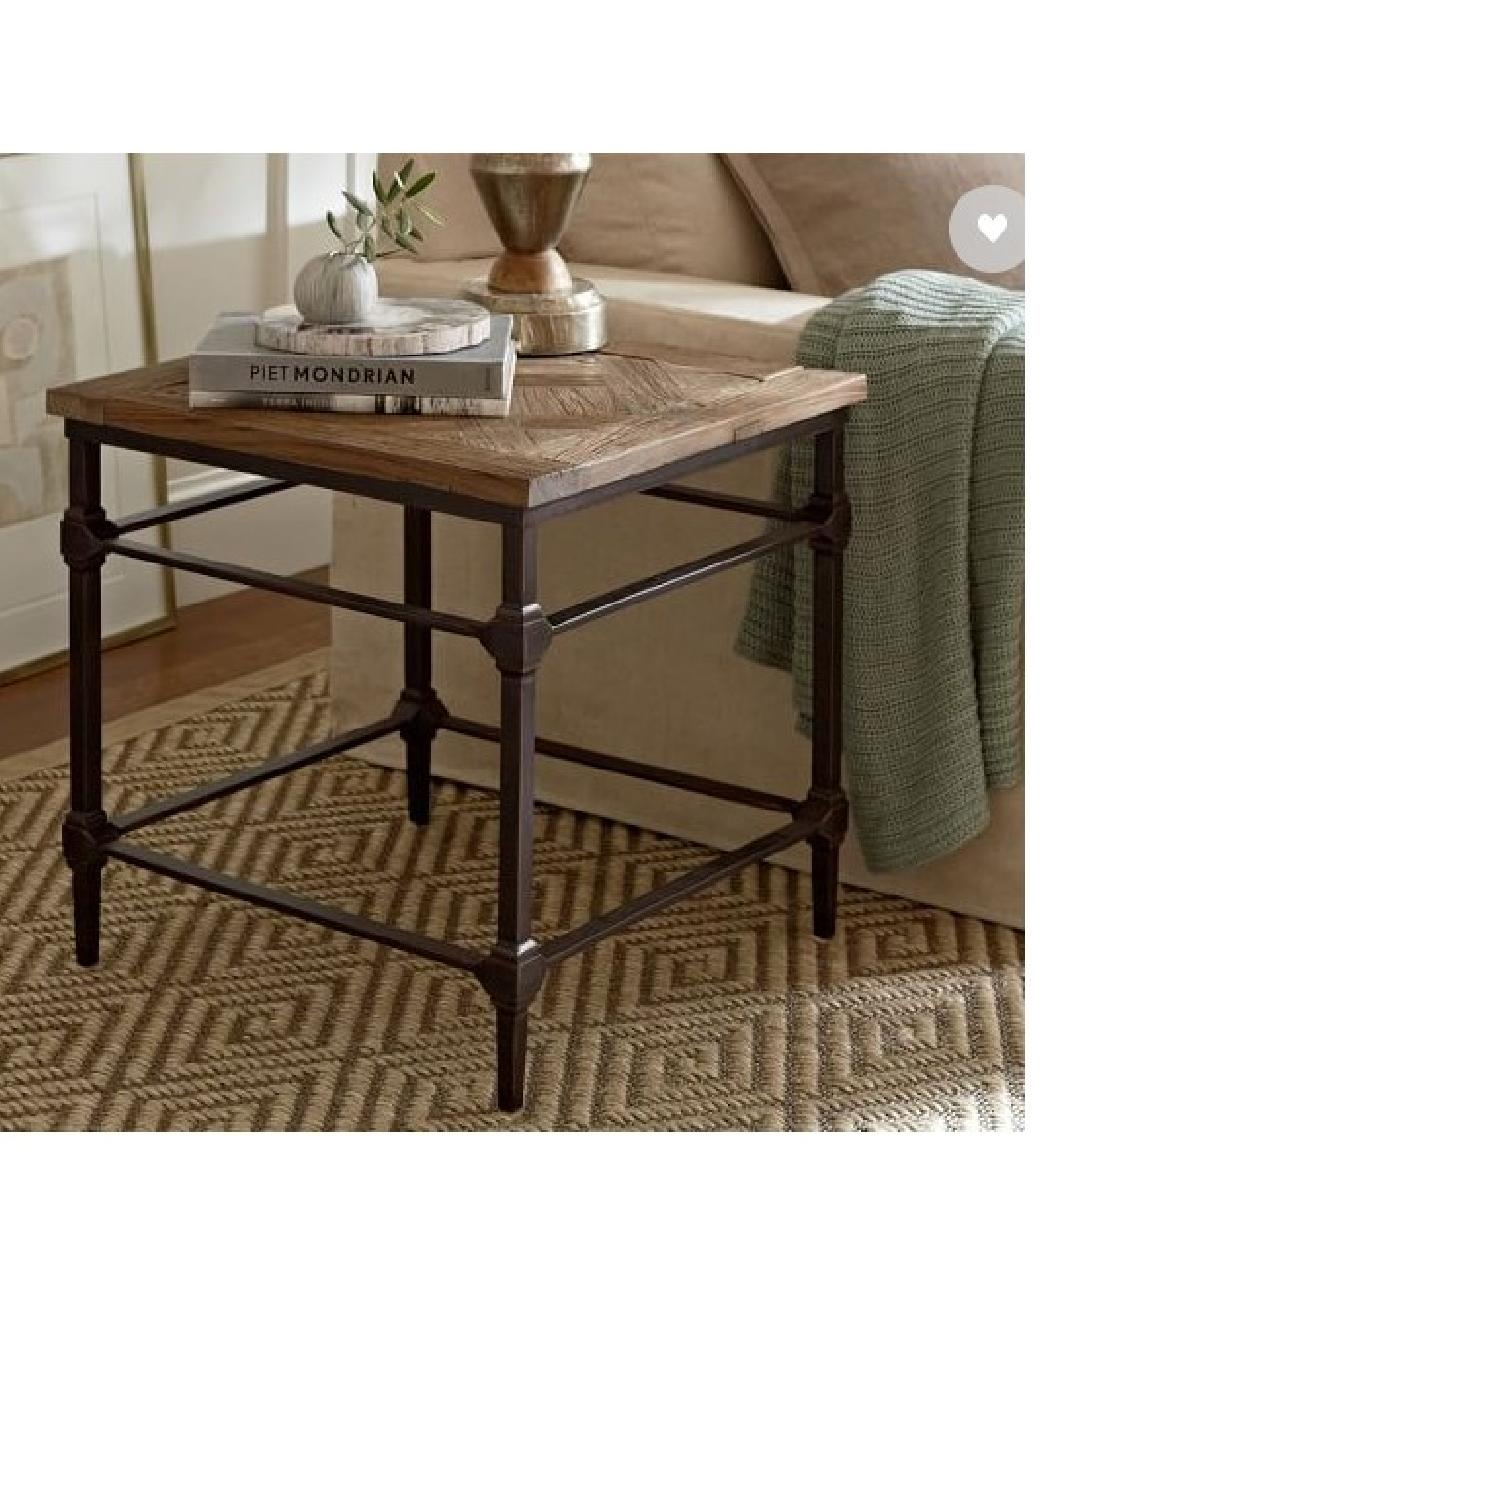 Pottery Barn Parquet Reclaimed Wood End Table-0